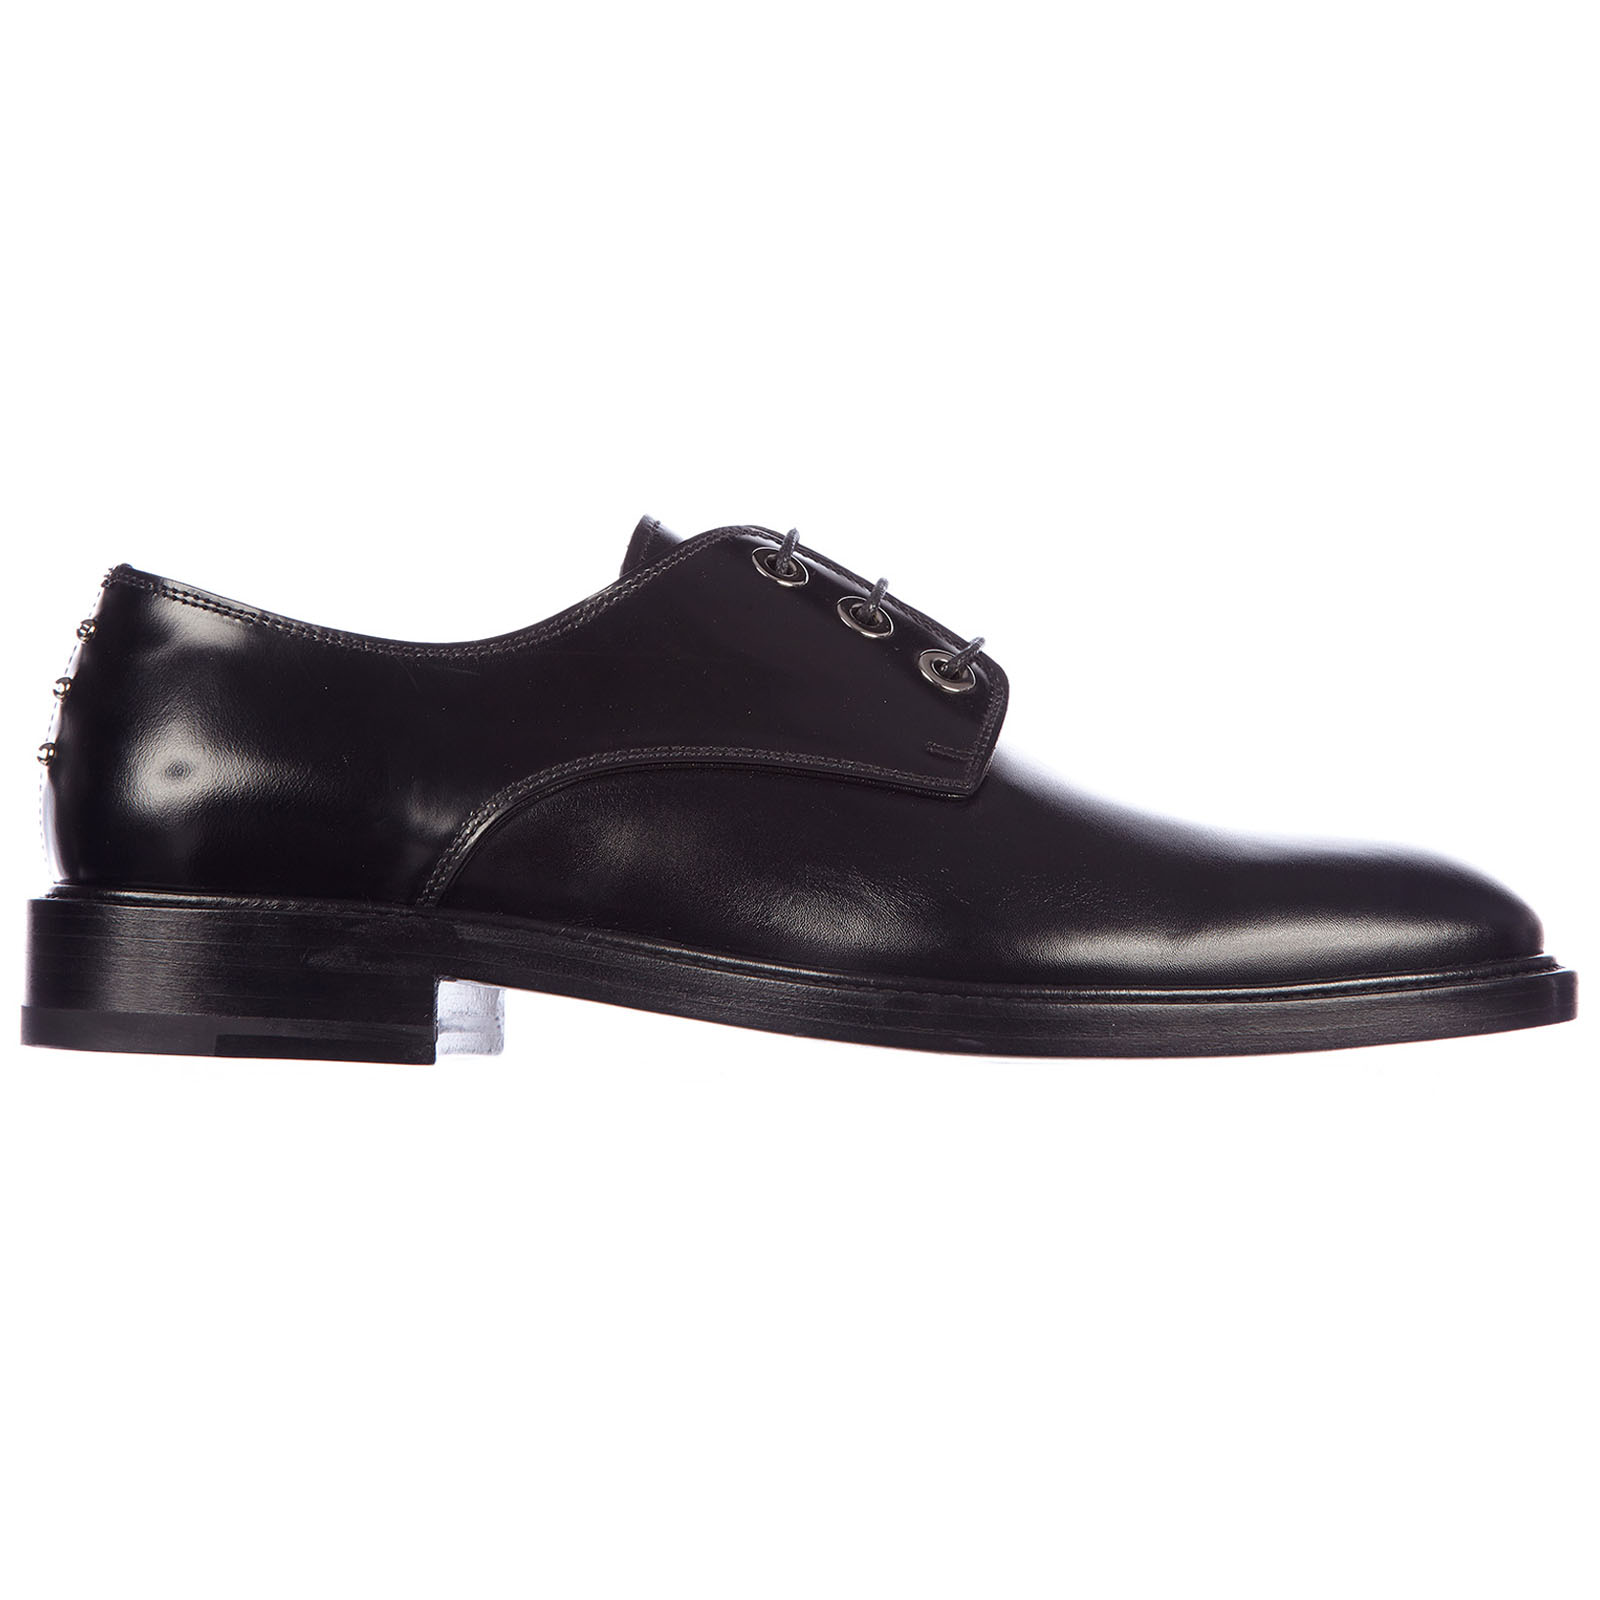 Men's classic leather lace up laced formal shoes derby nino